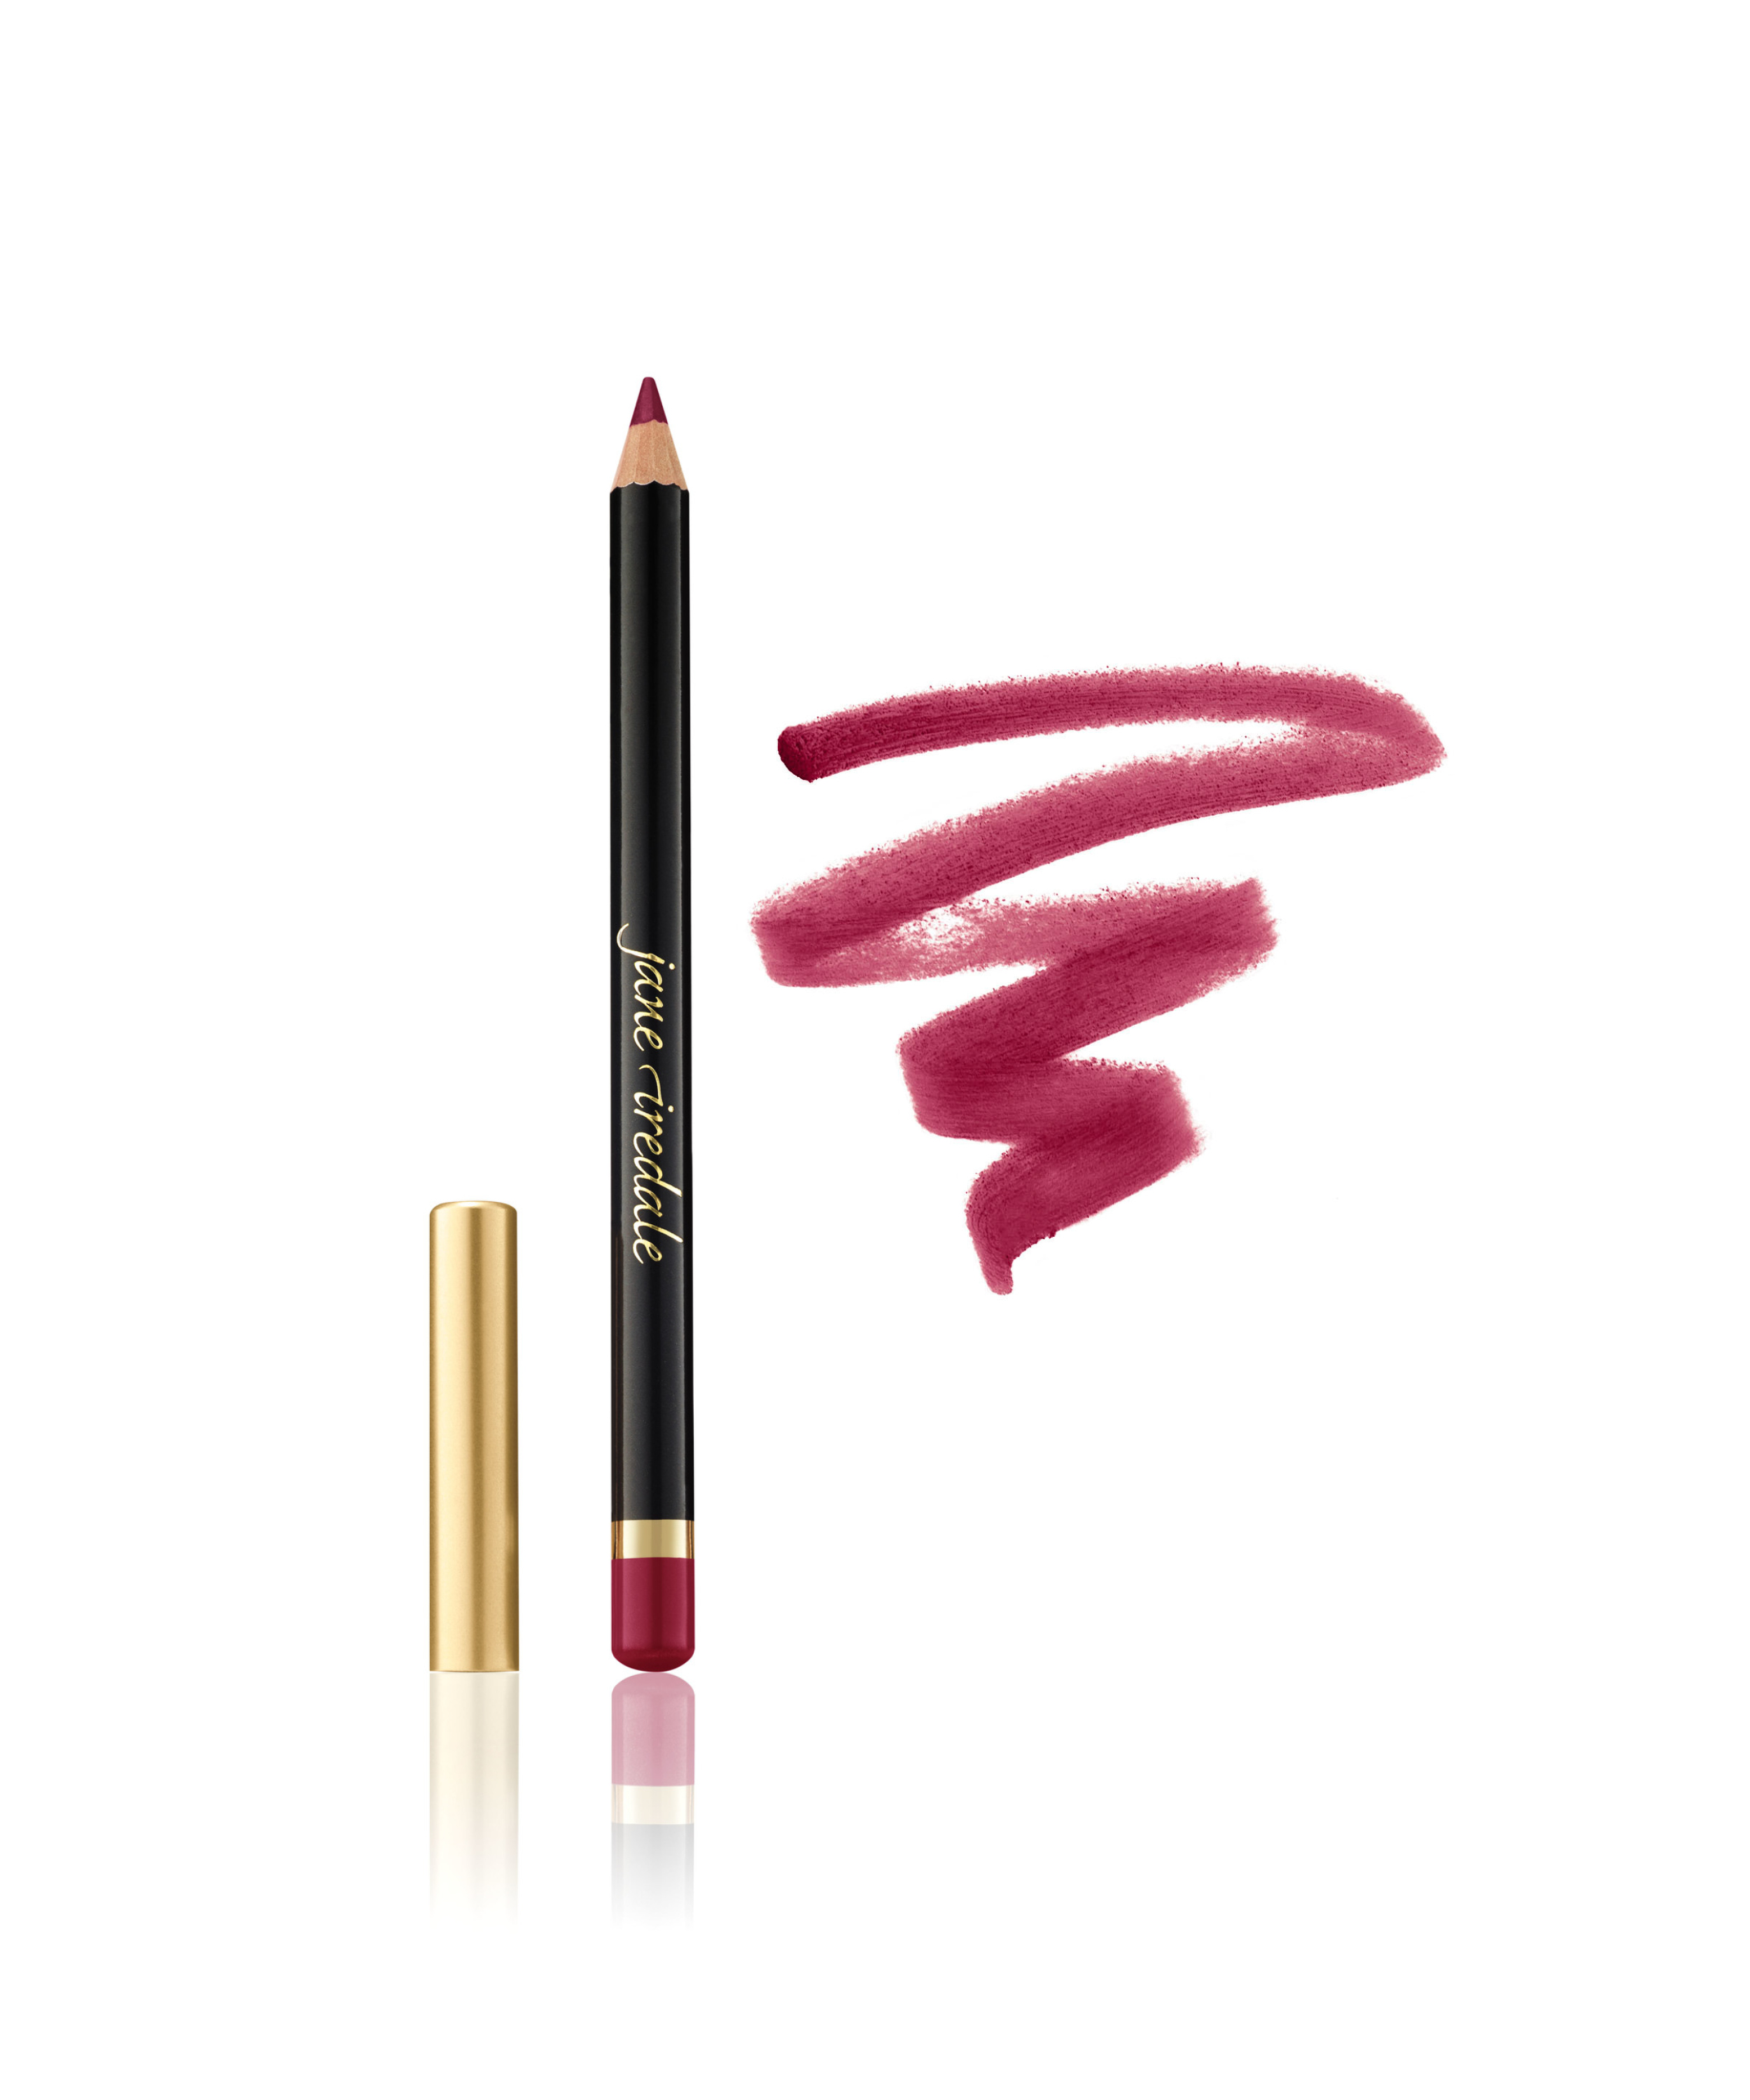 Jane Iredale Lip Pencil, classic red